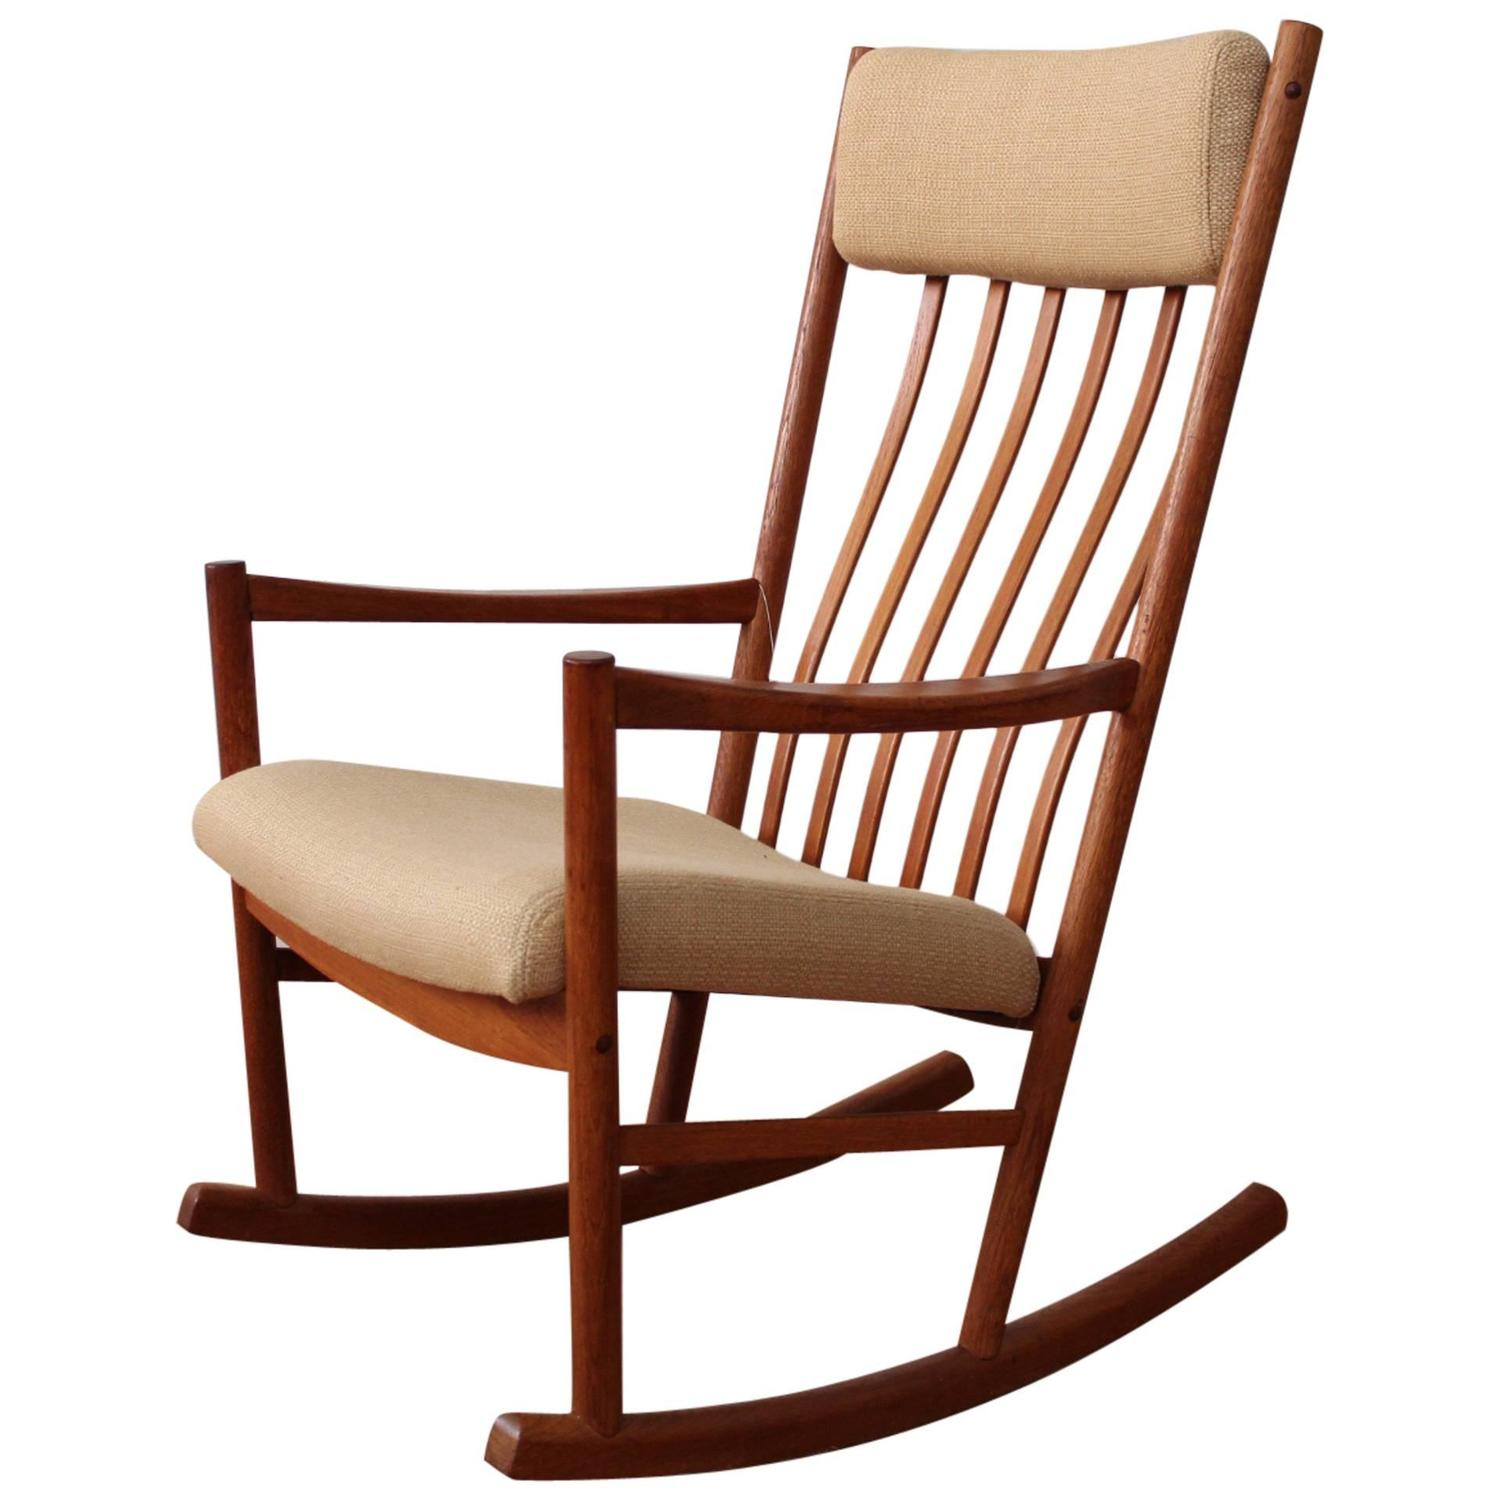 Rocky Chair Danish Teak Rocking Chair